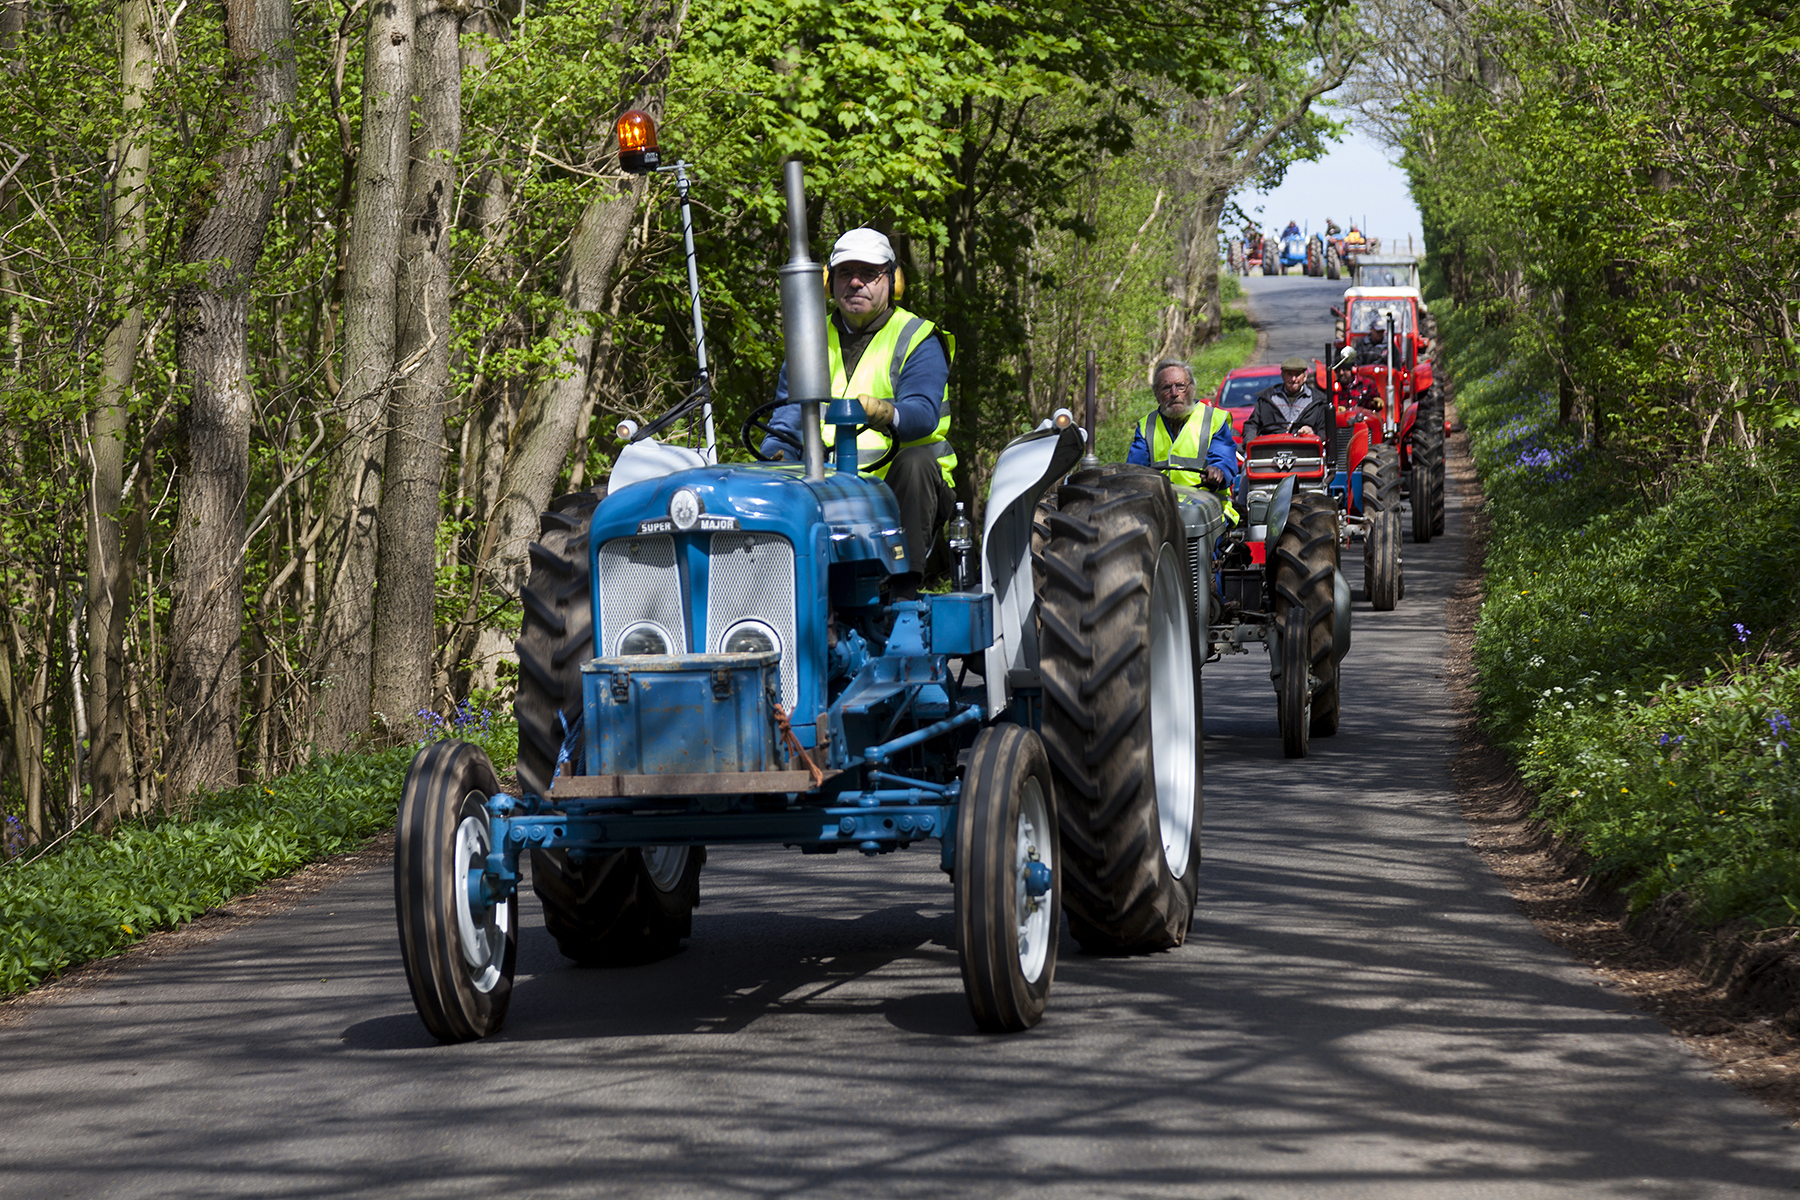 FUN: Preparations for the Bluebell Tractor Run